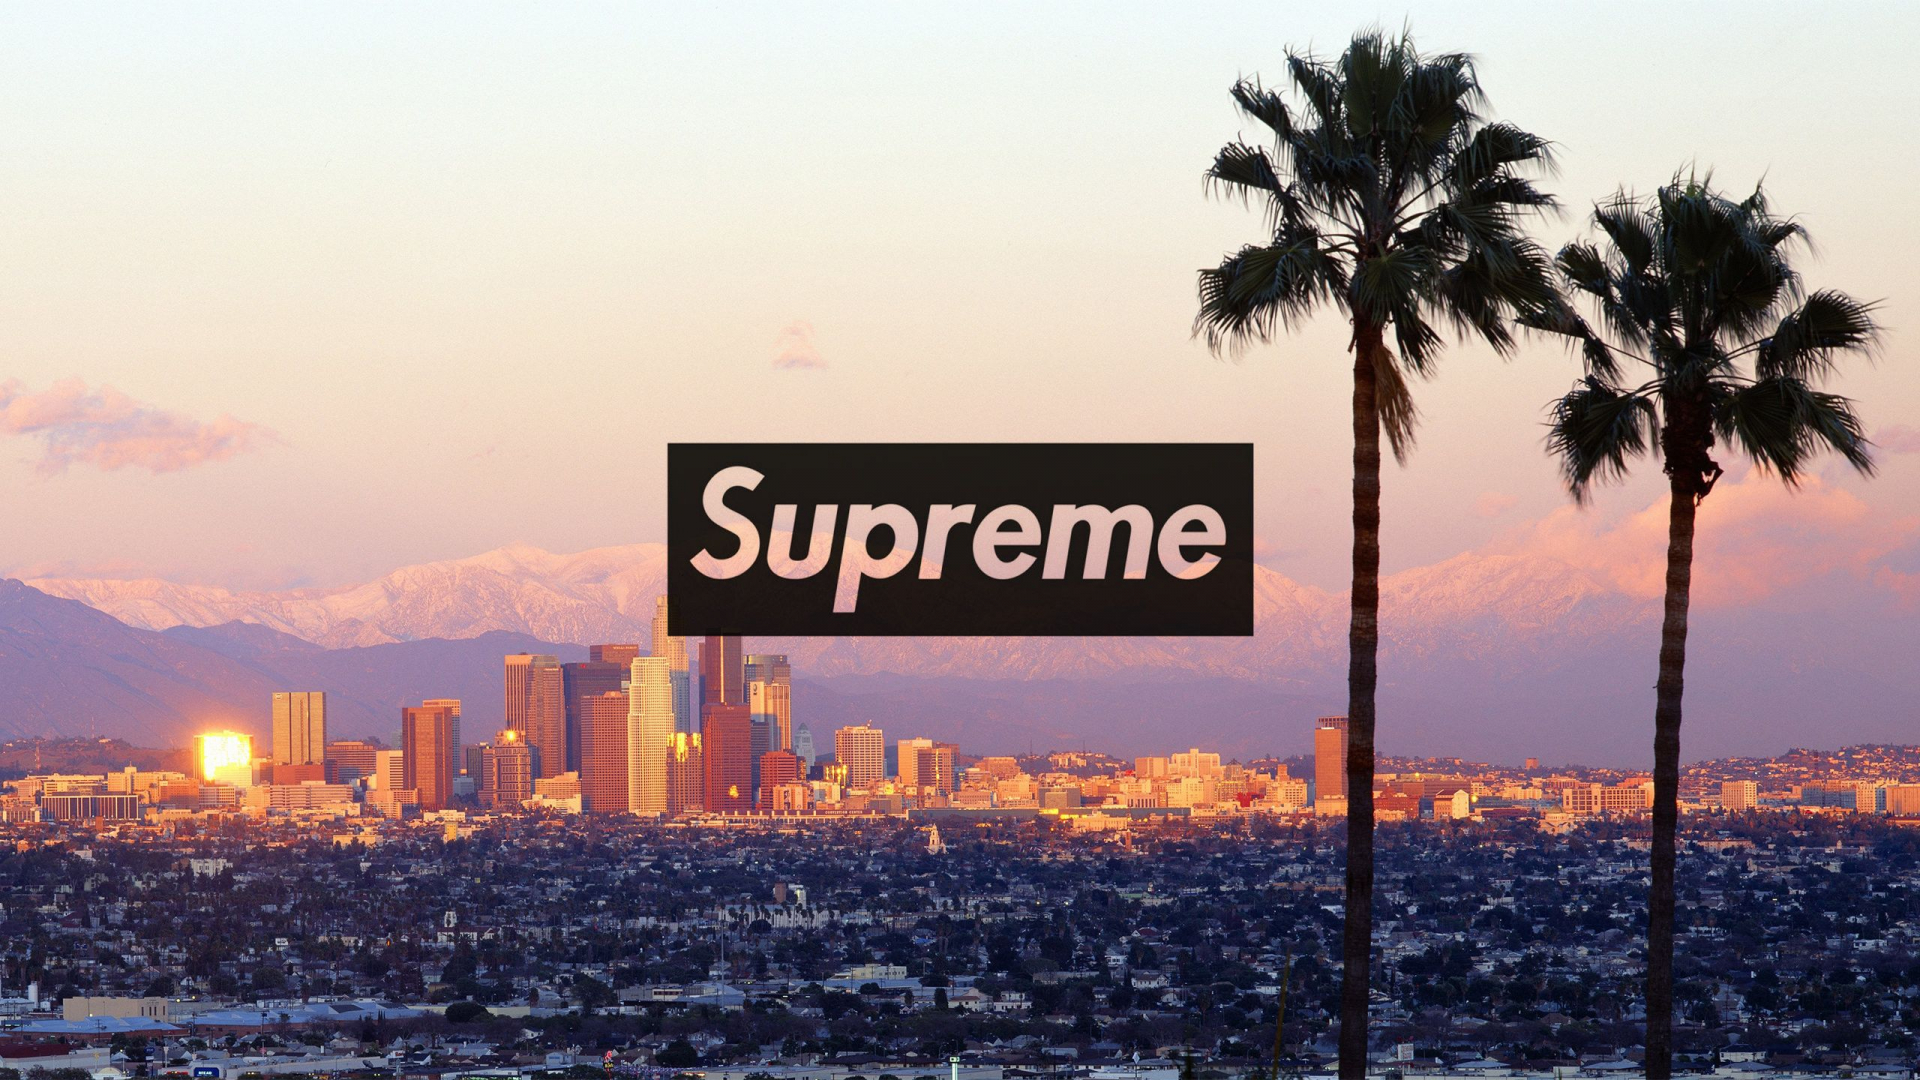 Free download 2560x1440 Download the Los Angeles Supreme ...